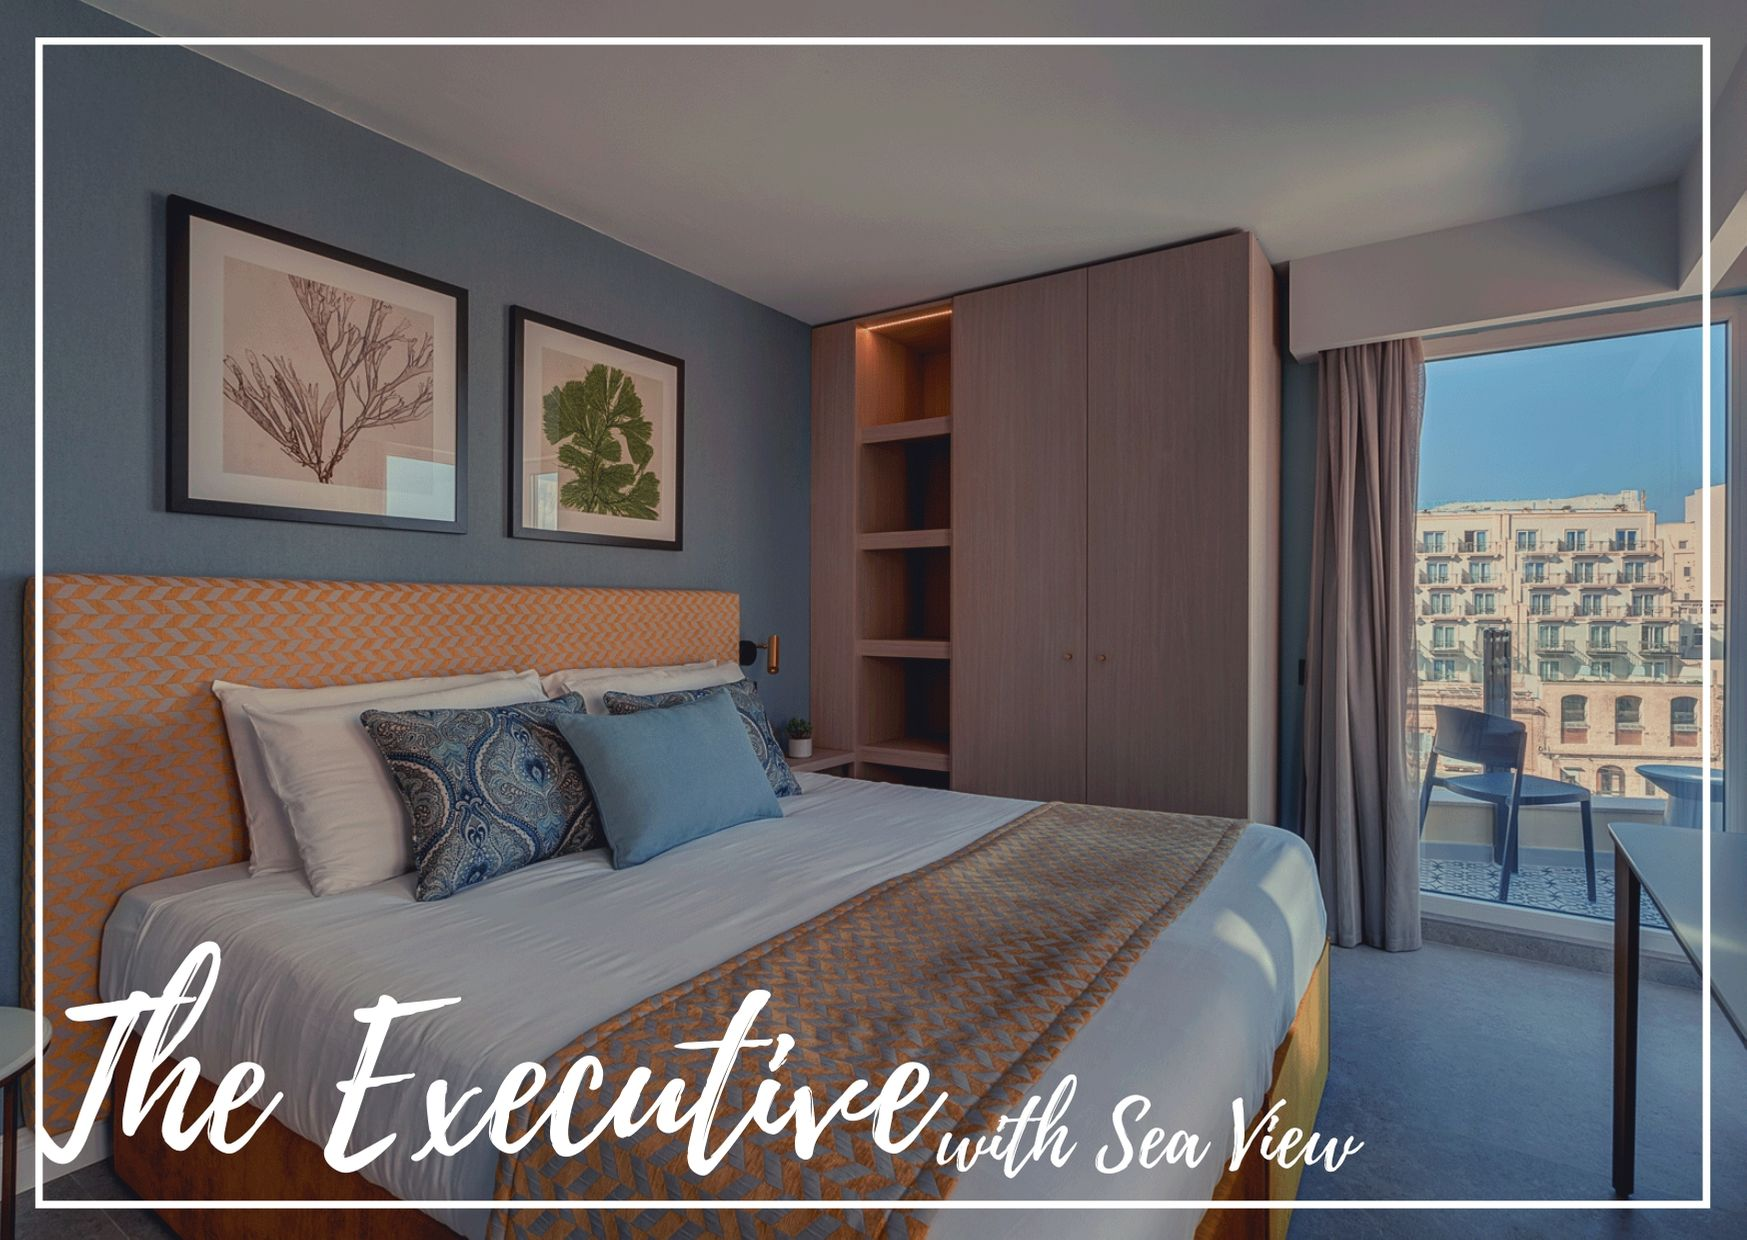 The executive-with-sea-view-opt